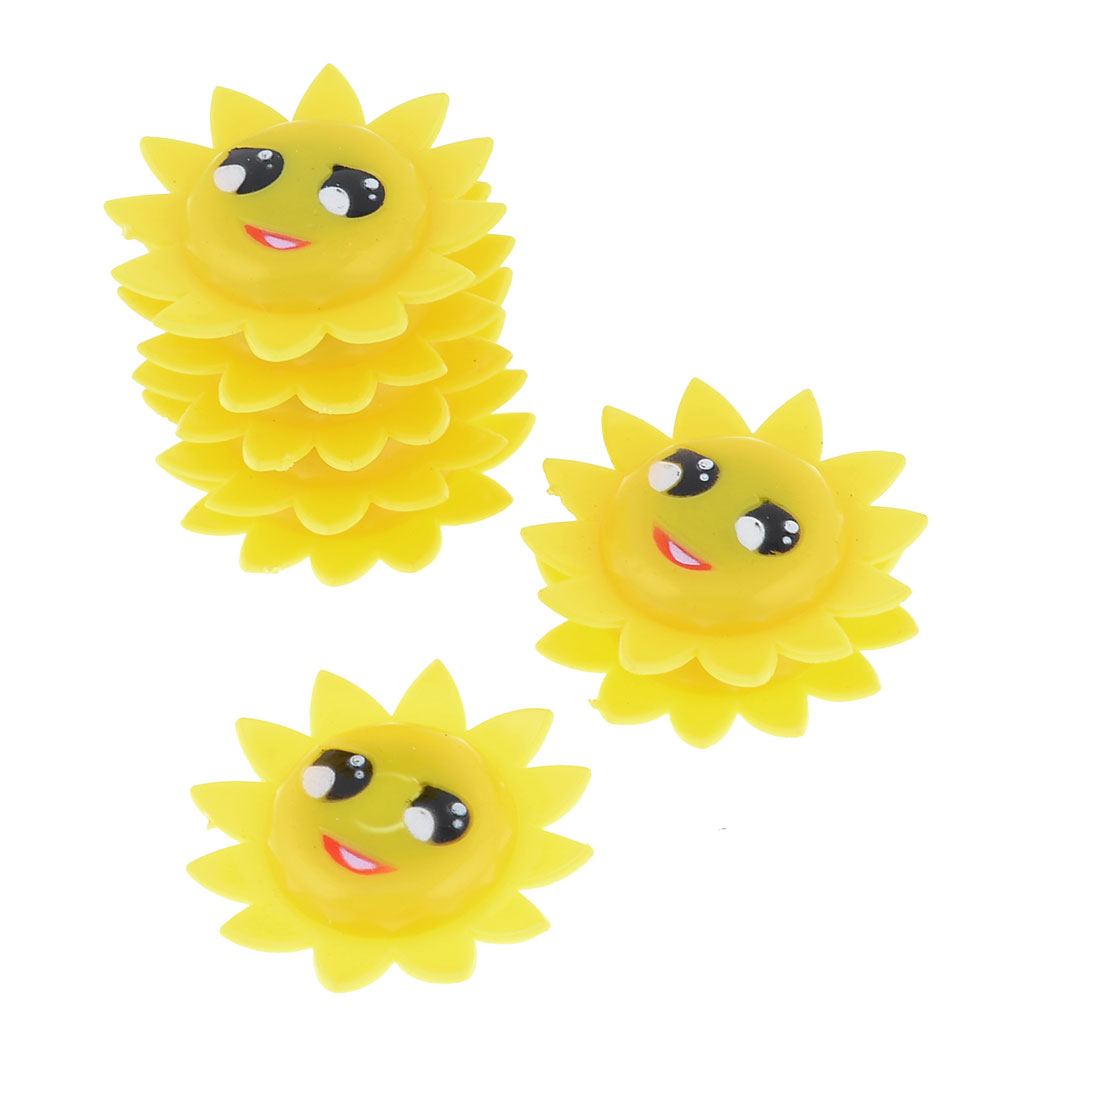 8 Pcs Yellow Plastic Sunflower Shape Fridge Magnetic Sticker Ornament